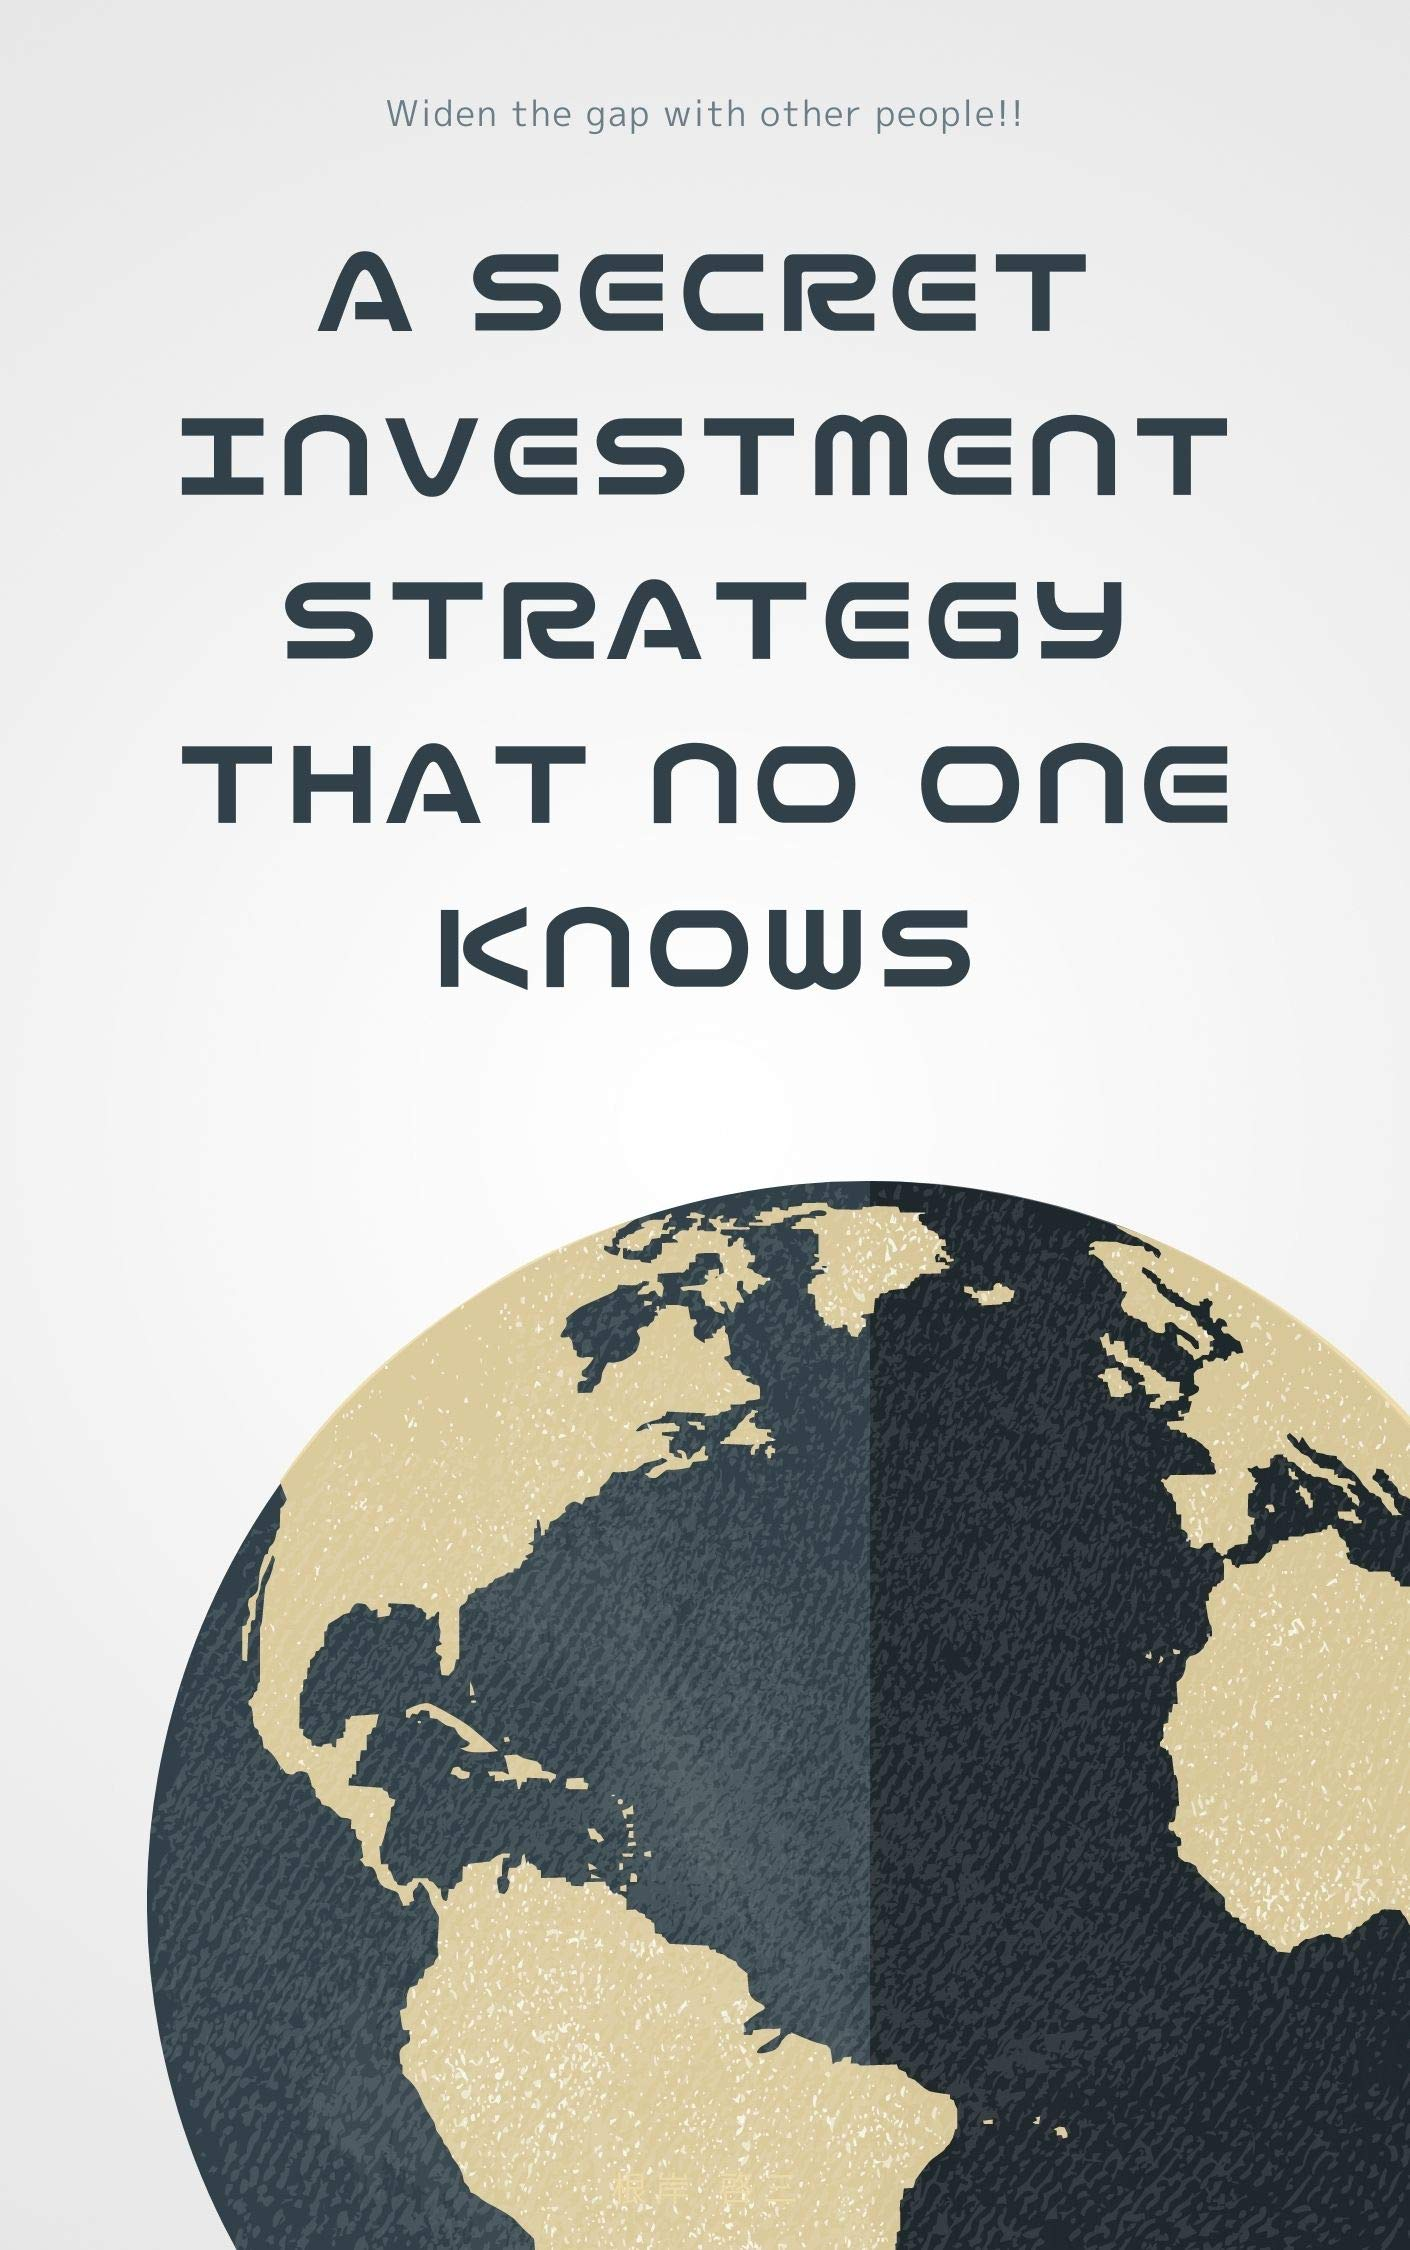 A secret investment strategy that no one knows